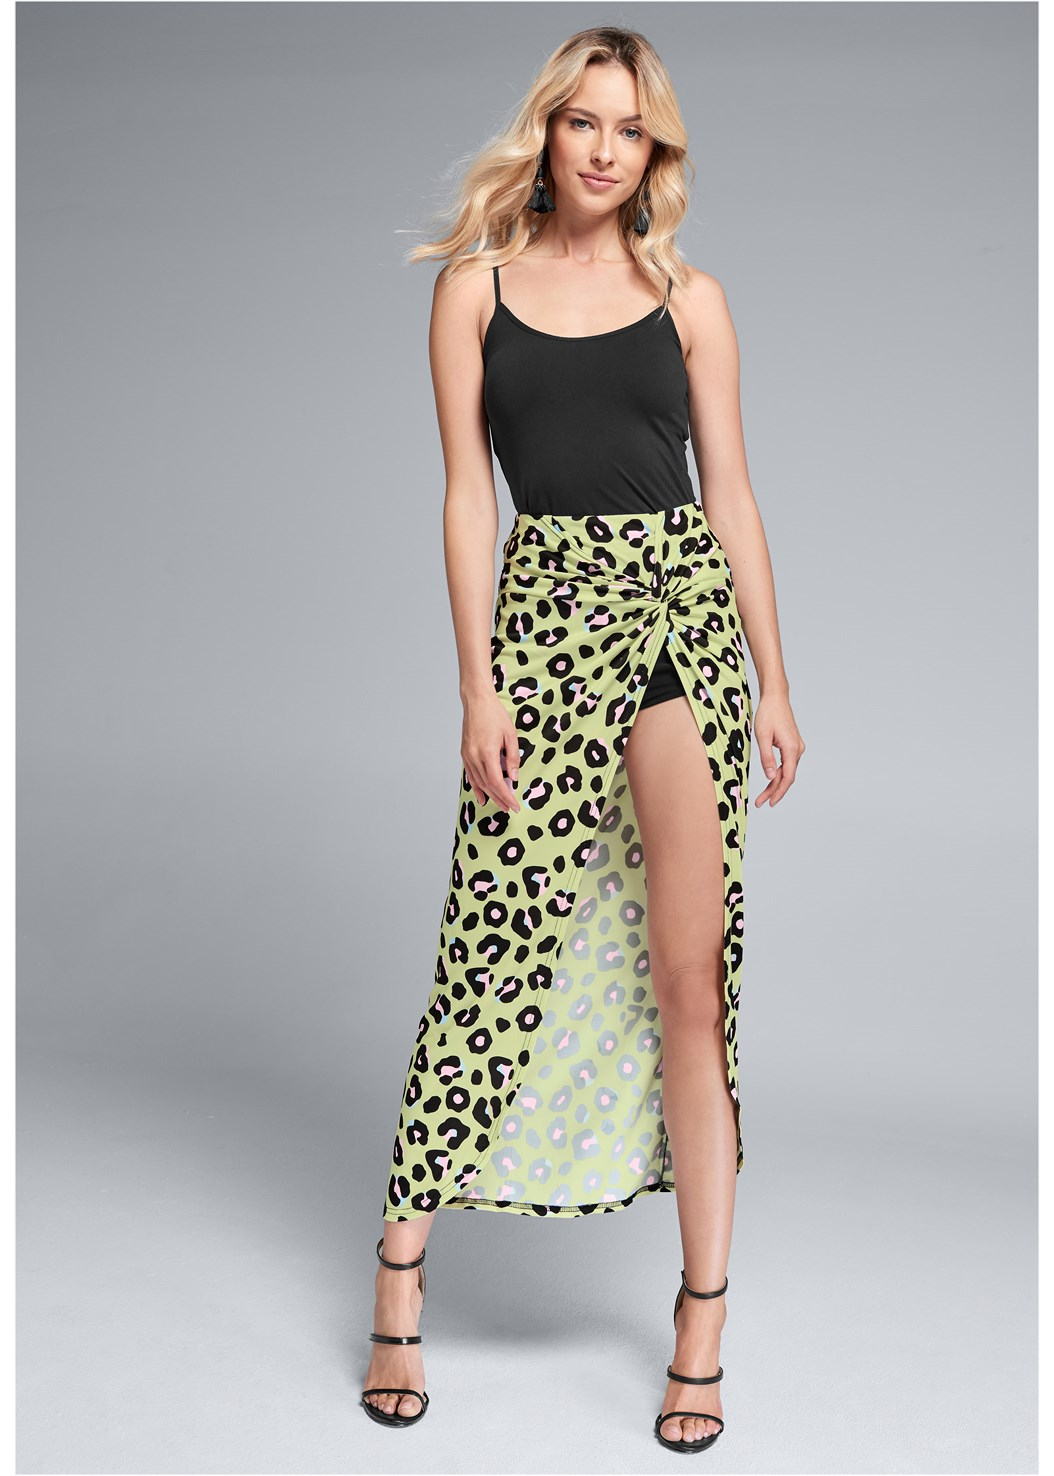 Leopard Print Skirt,Seamless Cami,Studded Strappy Heels,High Heel Strappy Sandals,Bauble Fringe Earrings